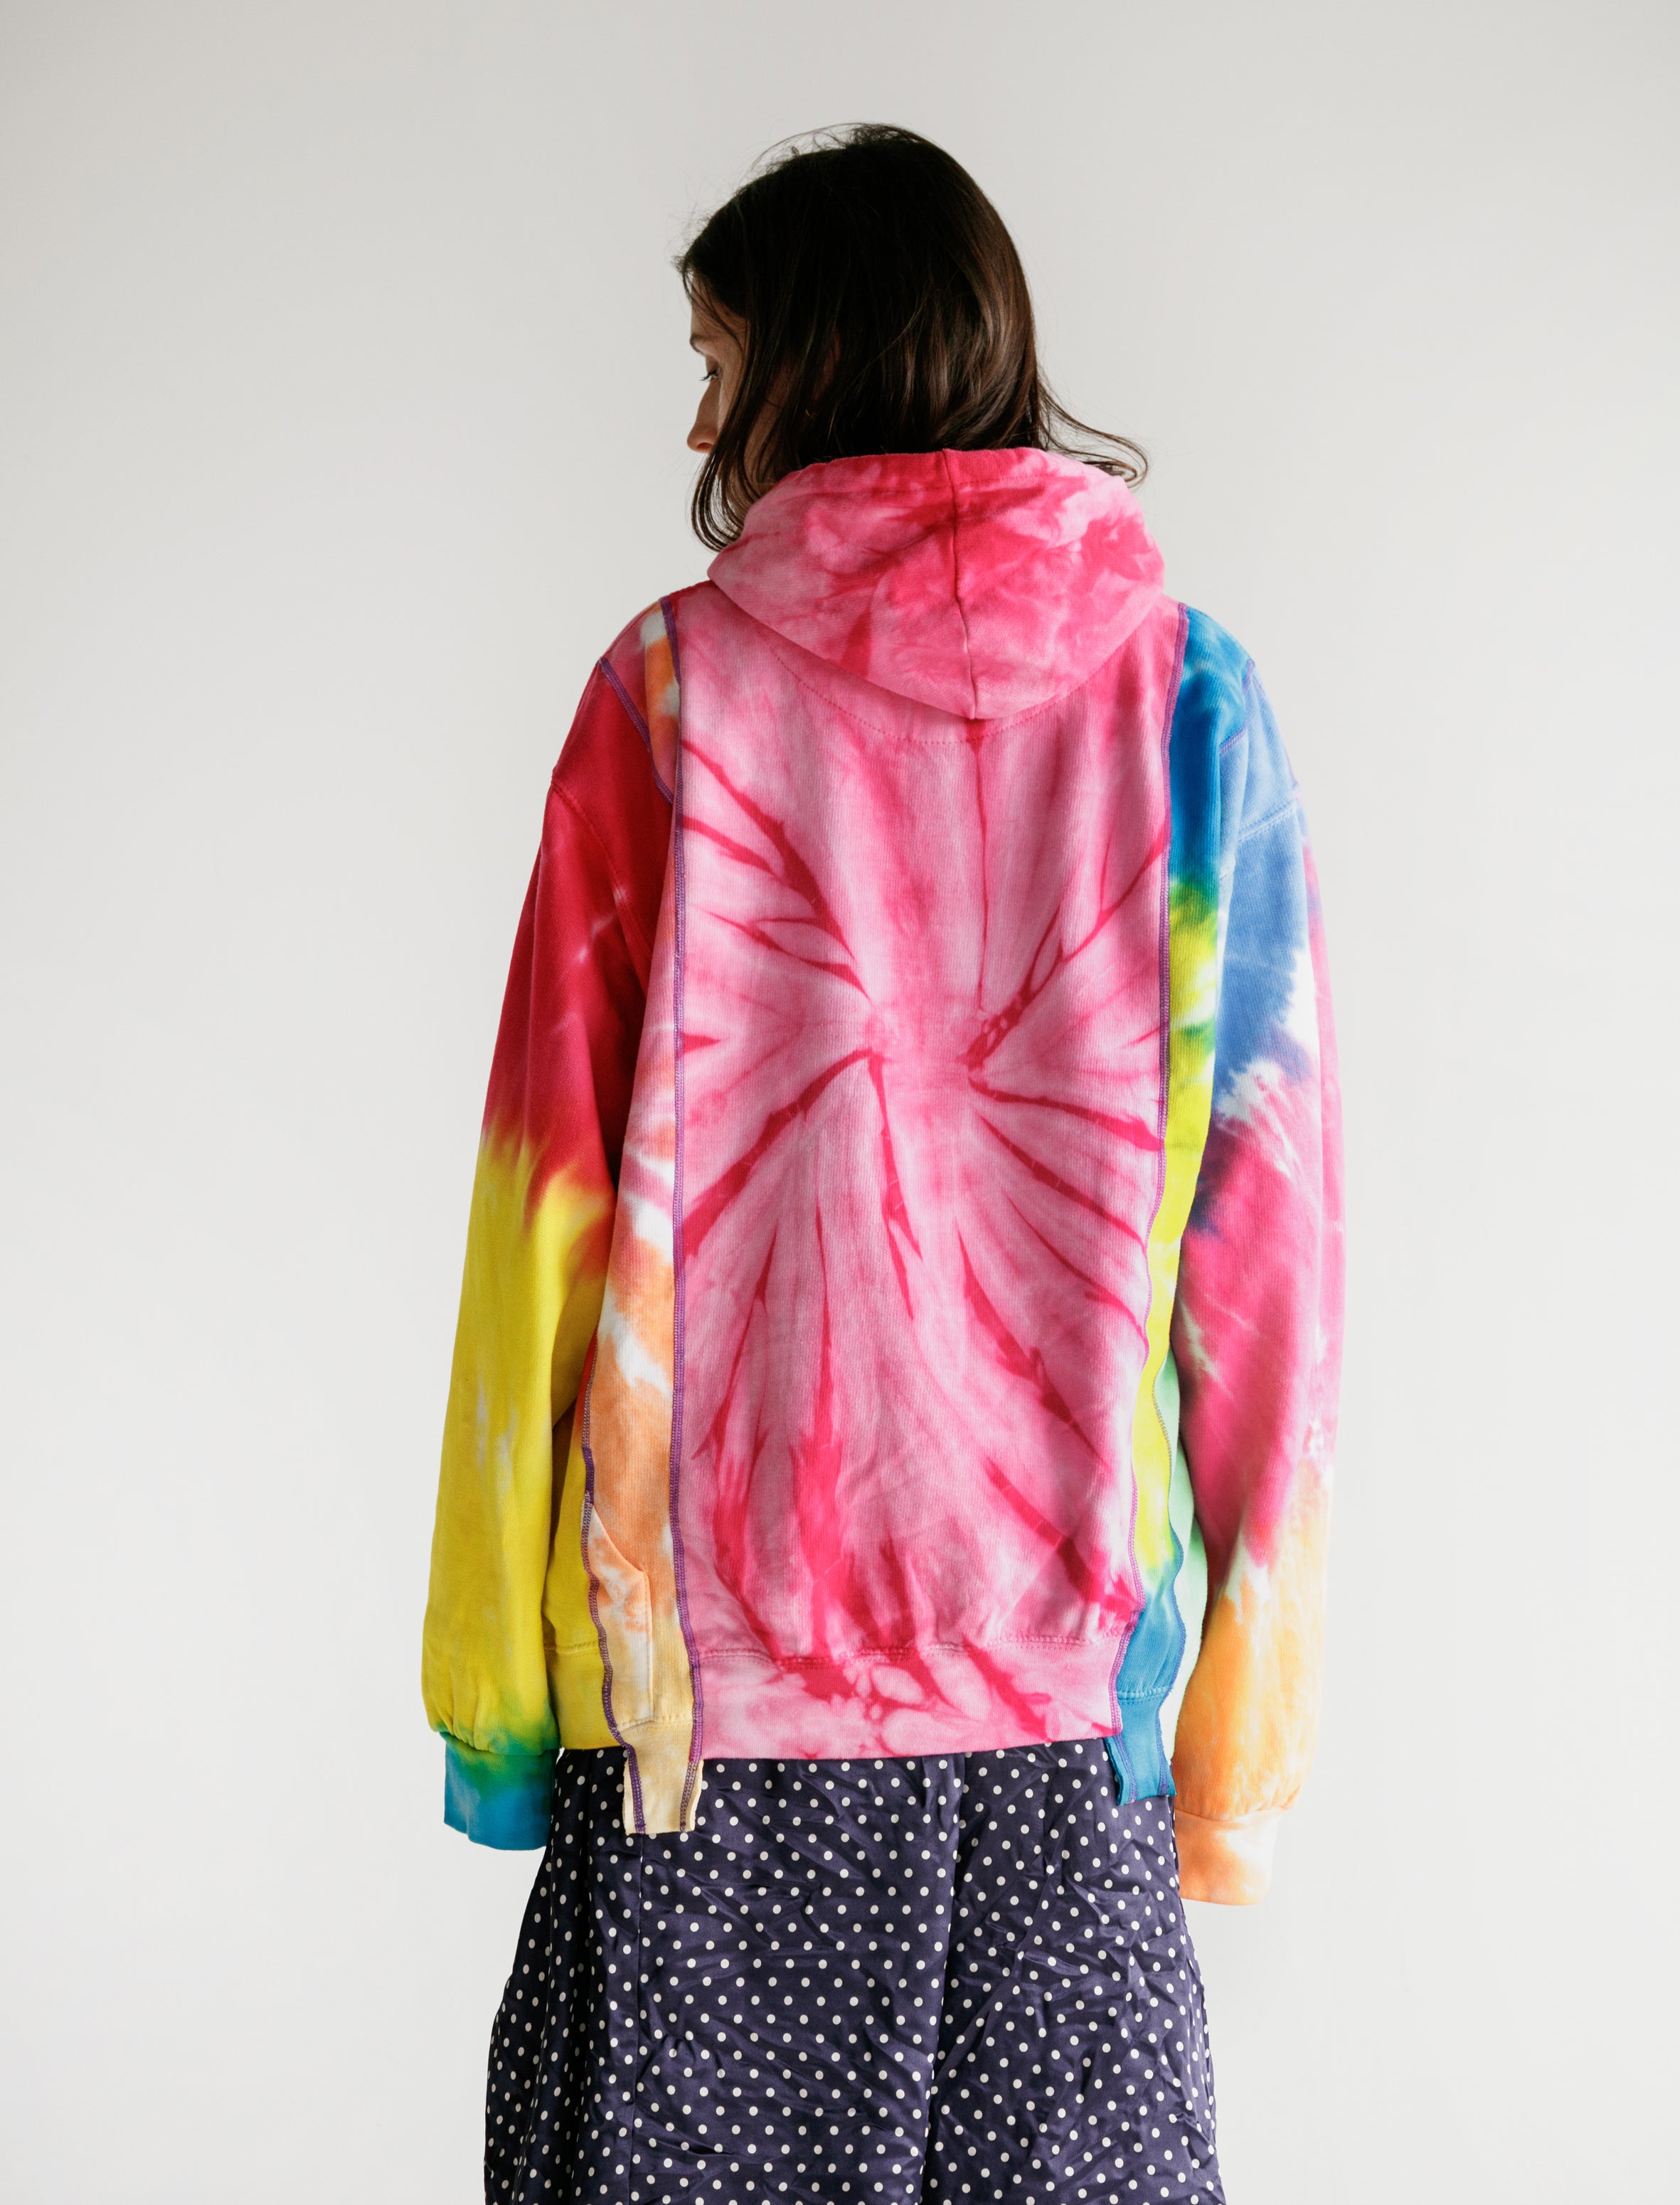 Needles Rebuild by Needles 5 Cuts Hoody Tie Dye